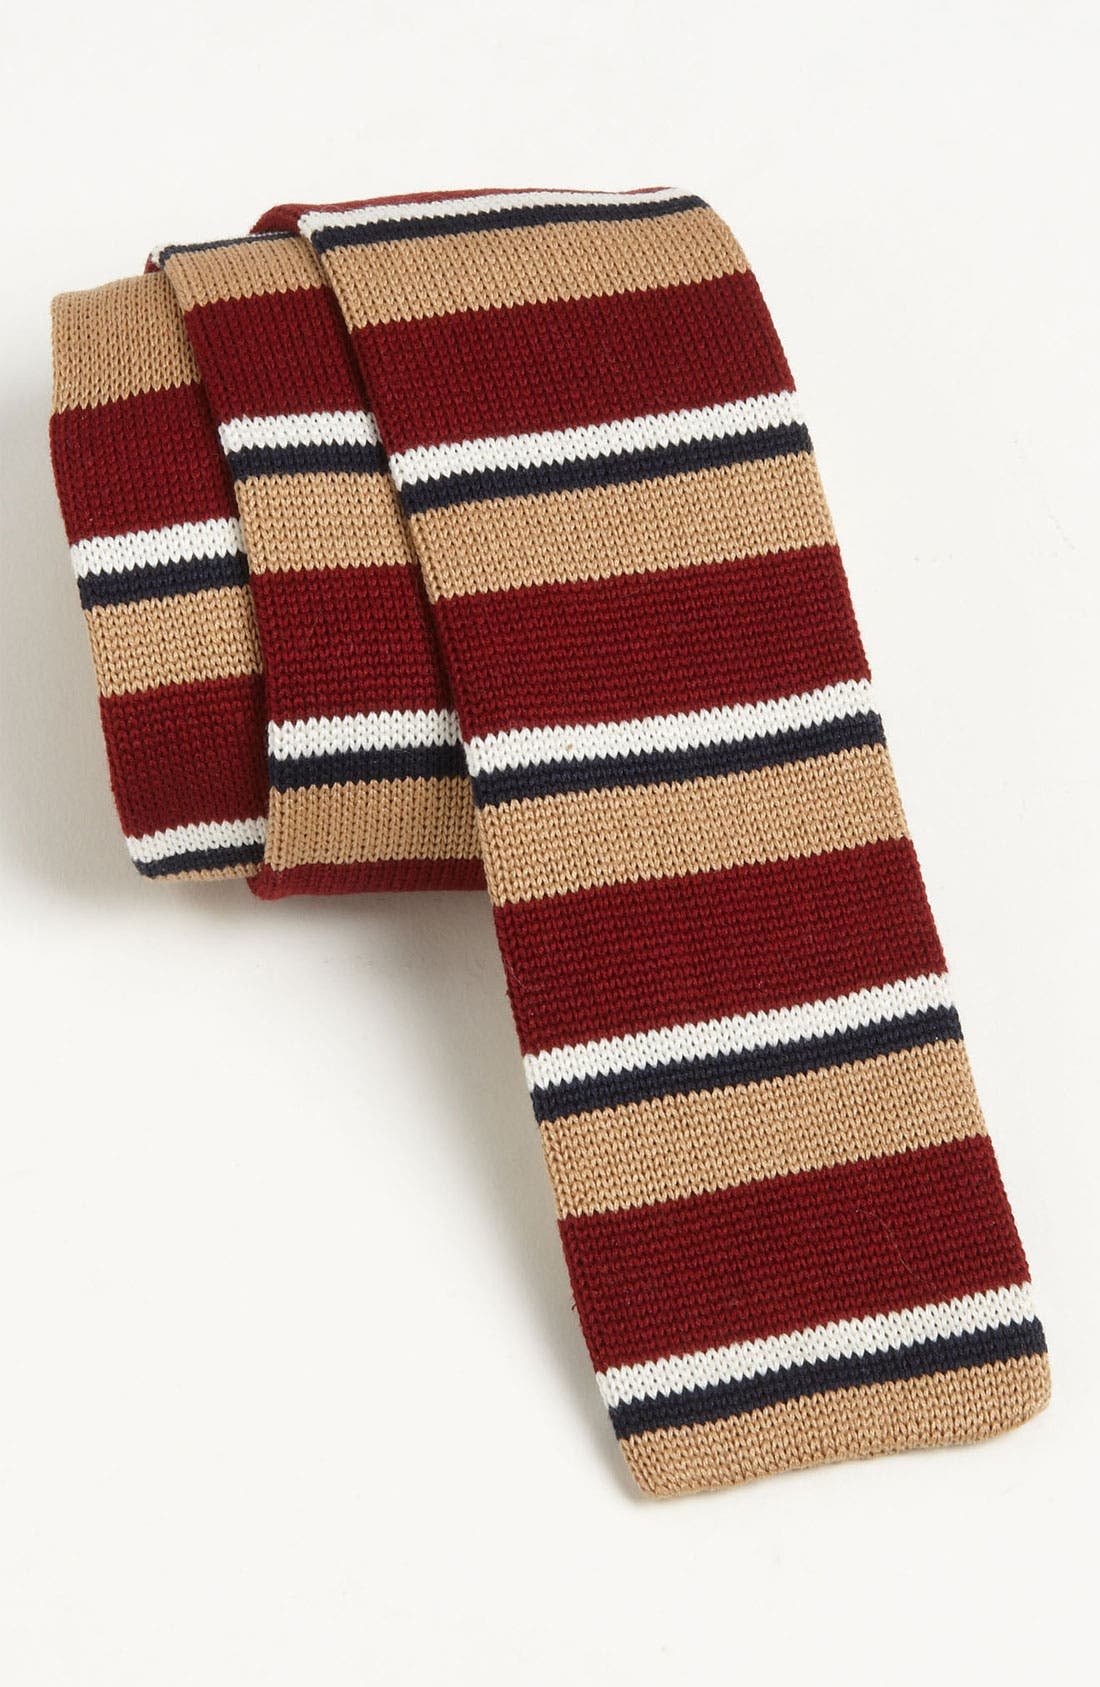 Alternate Image 1 Selected - Ivy Prepster Knit Tie